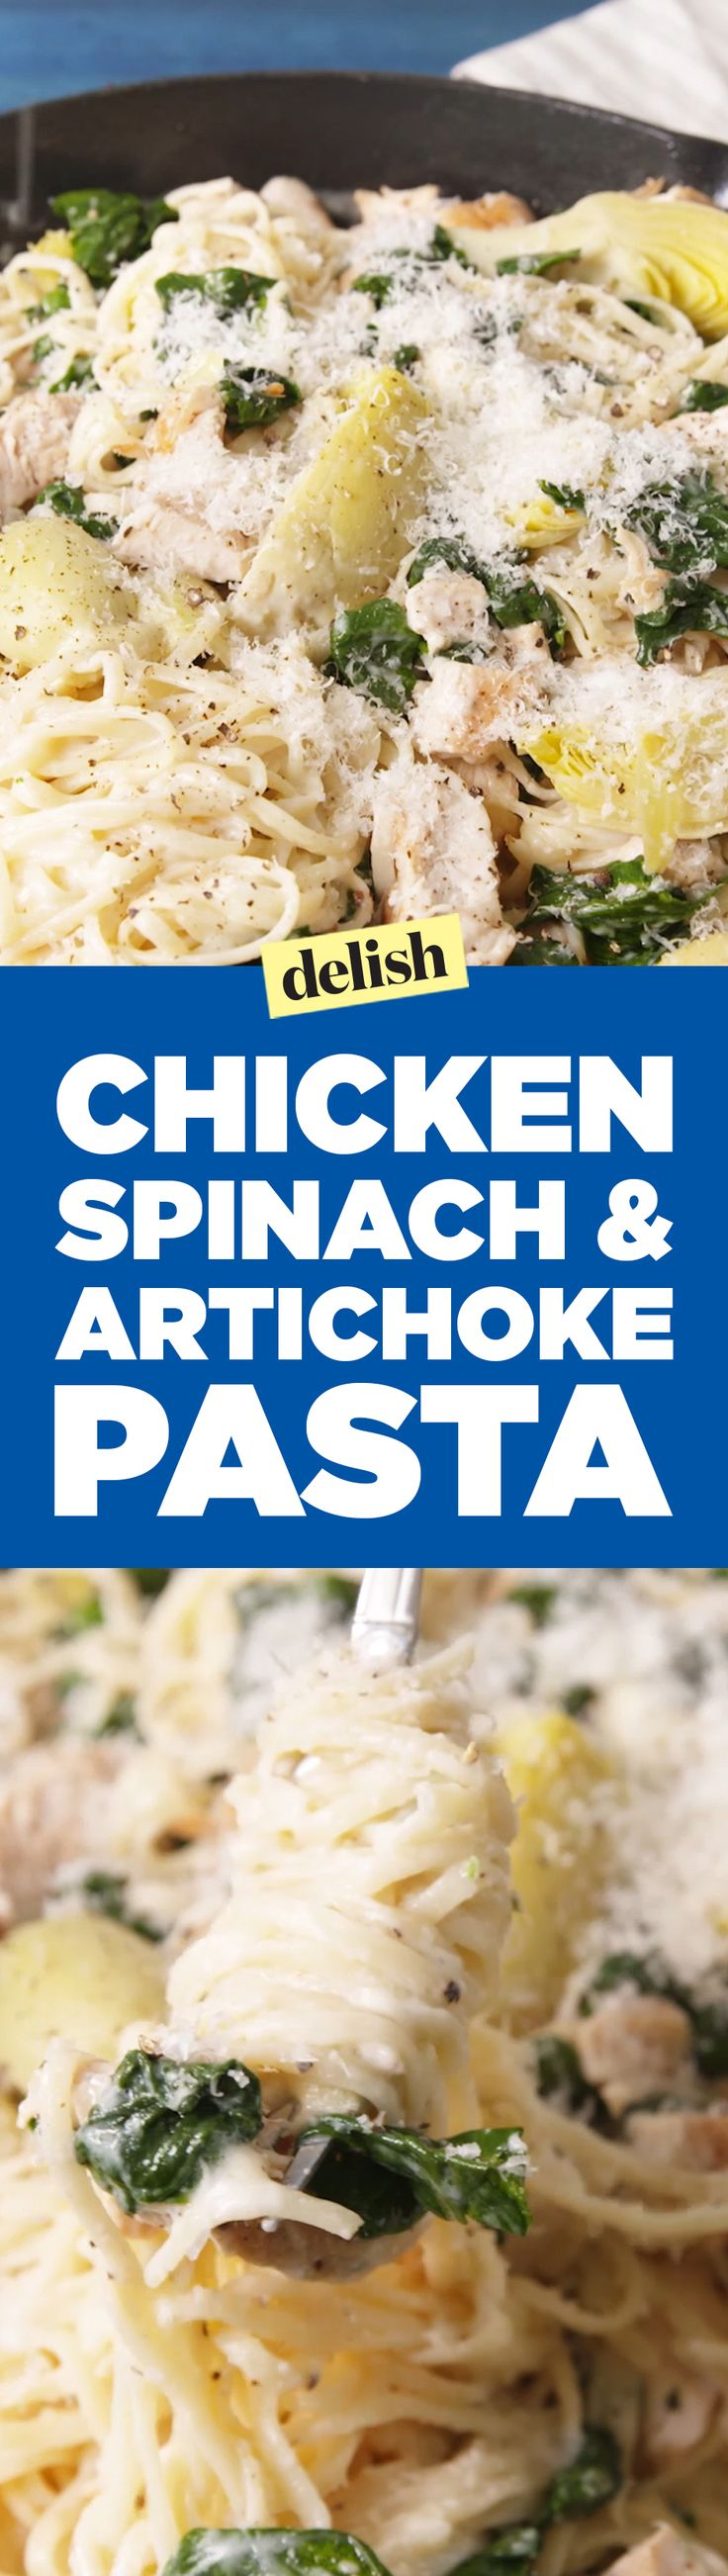 Chicken, spinach & artichoke pasta is just what you need for an amazing dinner. Get the recipe on Delish.com.